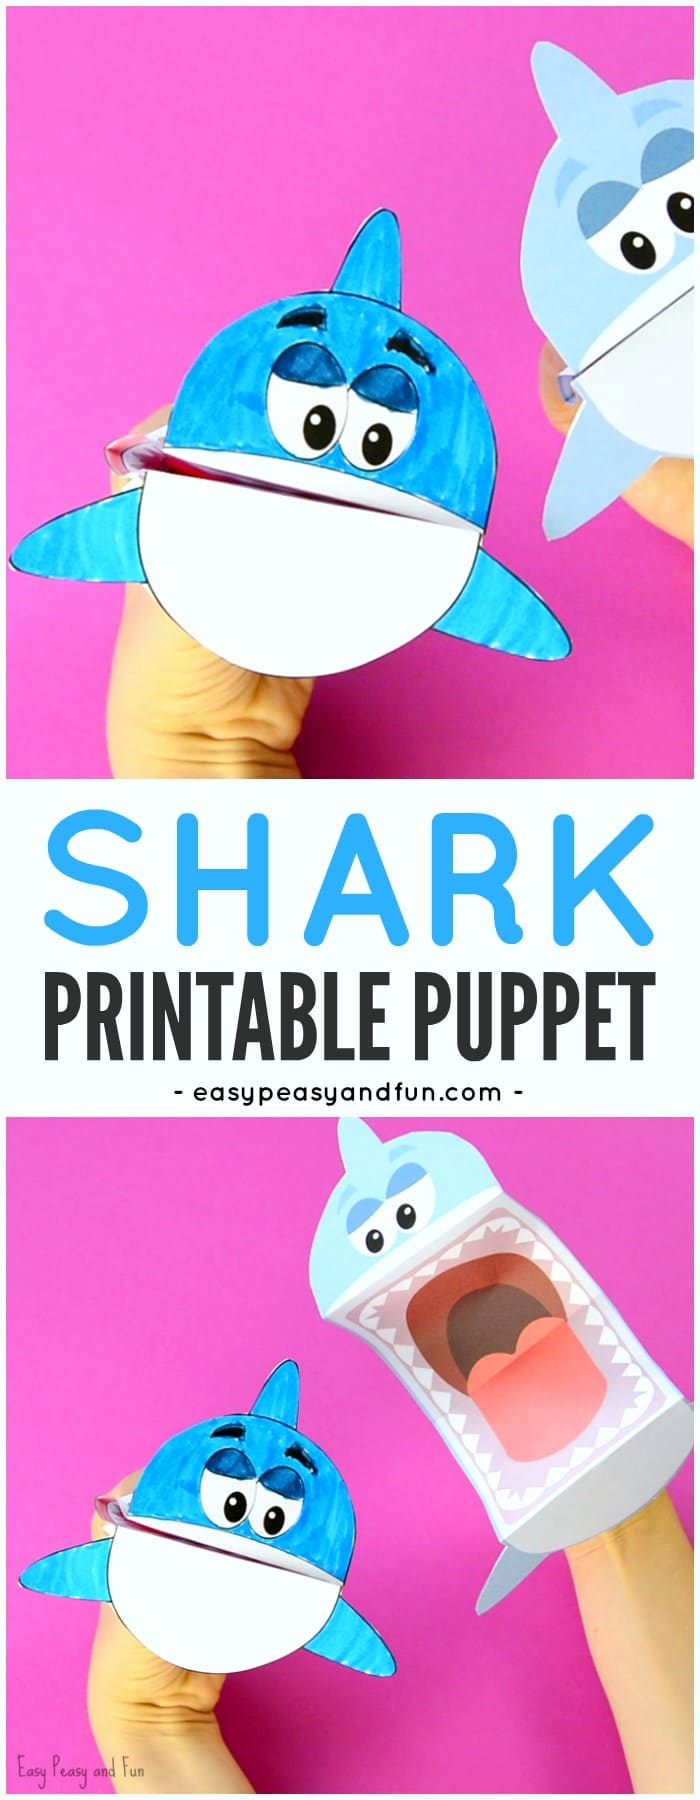 adorable printable shark puppet paper craft for kids to make - Printable Printable